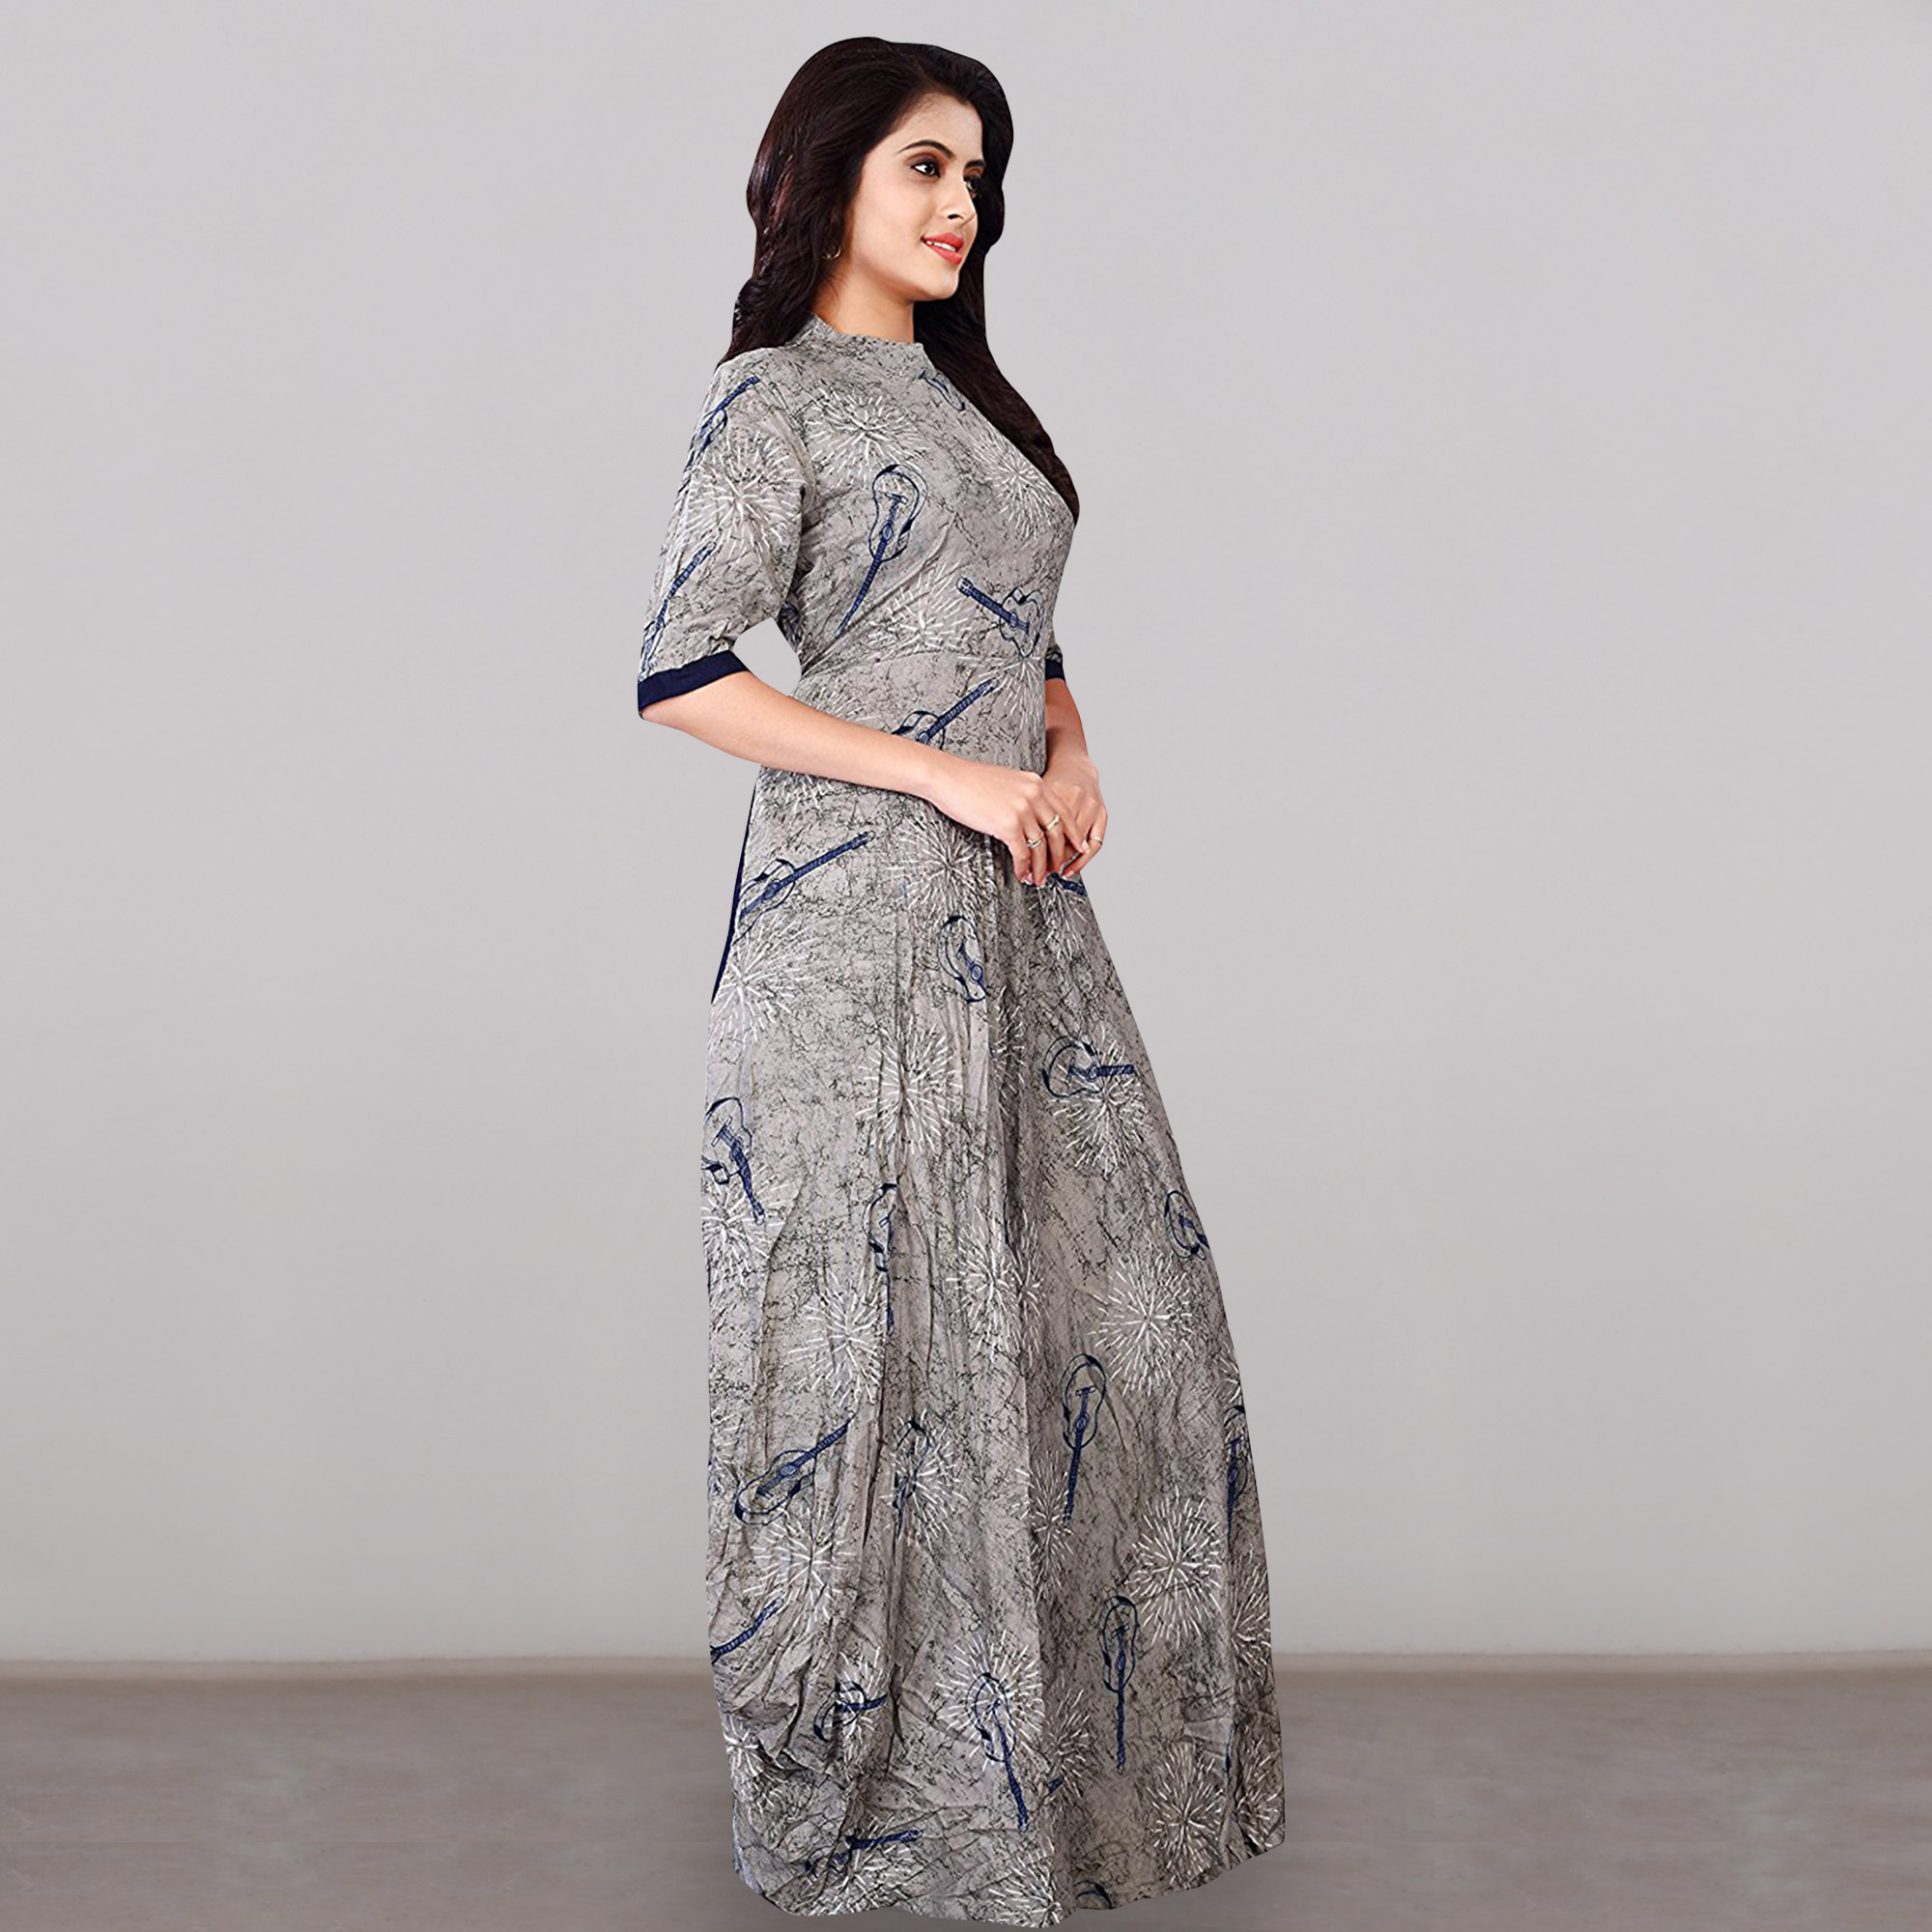 7b04df8f4a Buy Captivating Gray Colored Partywear Printed Rayon Long Kurti for ...